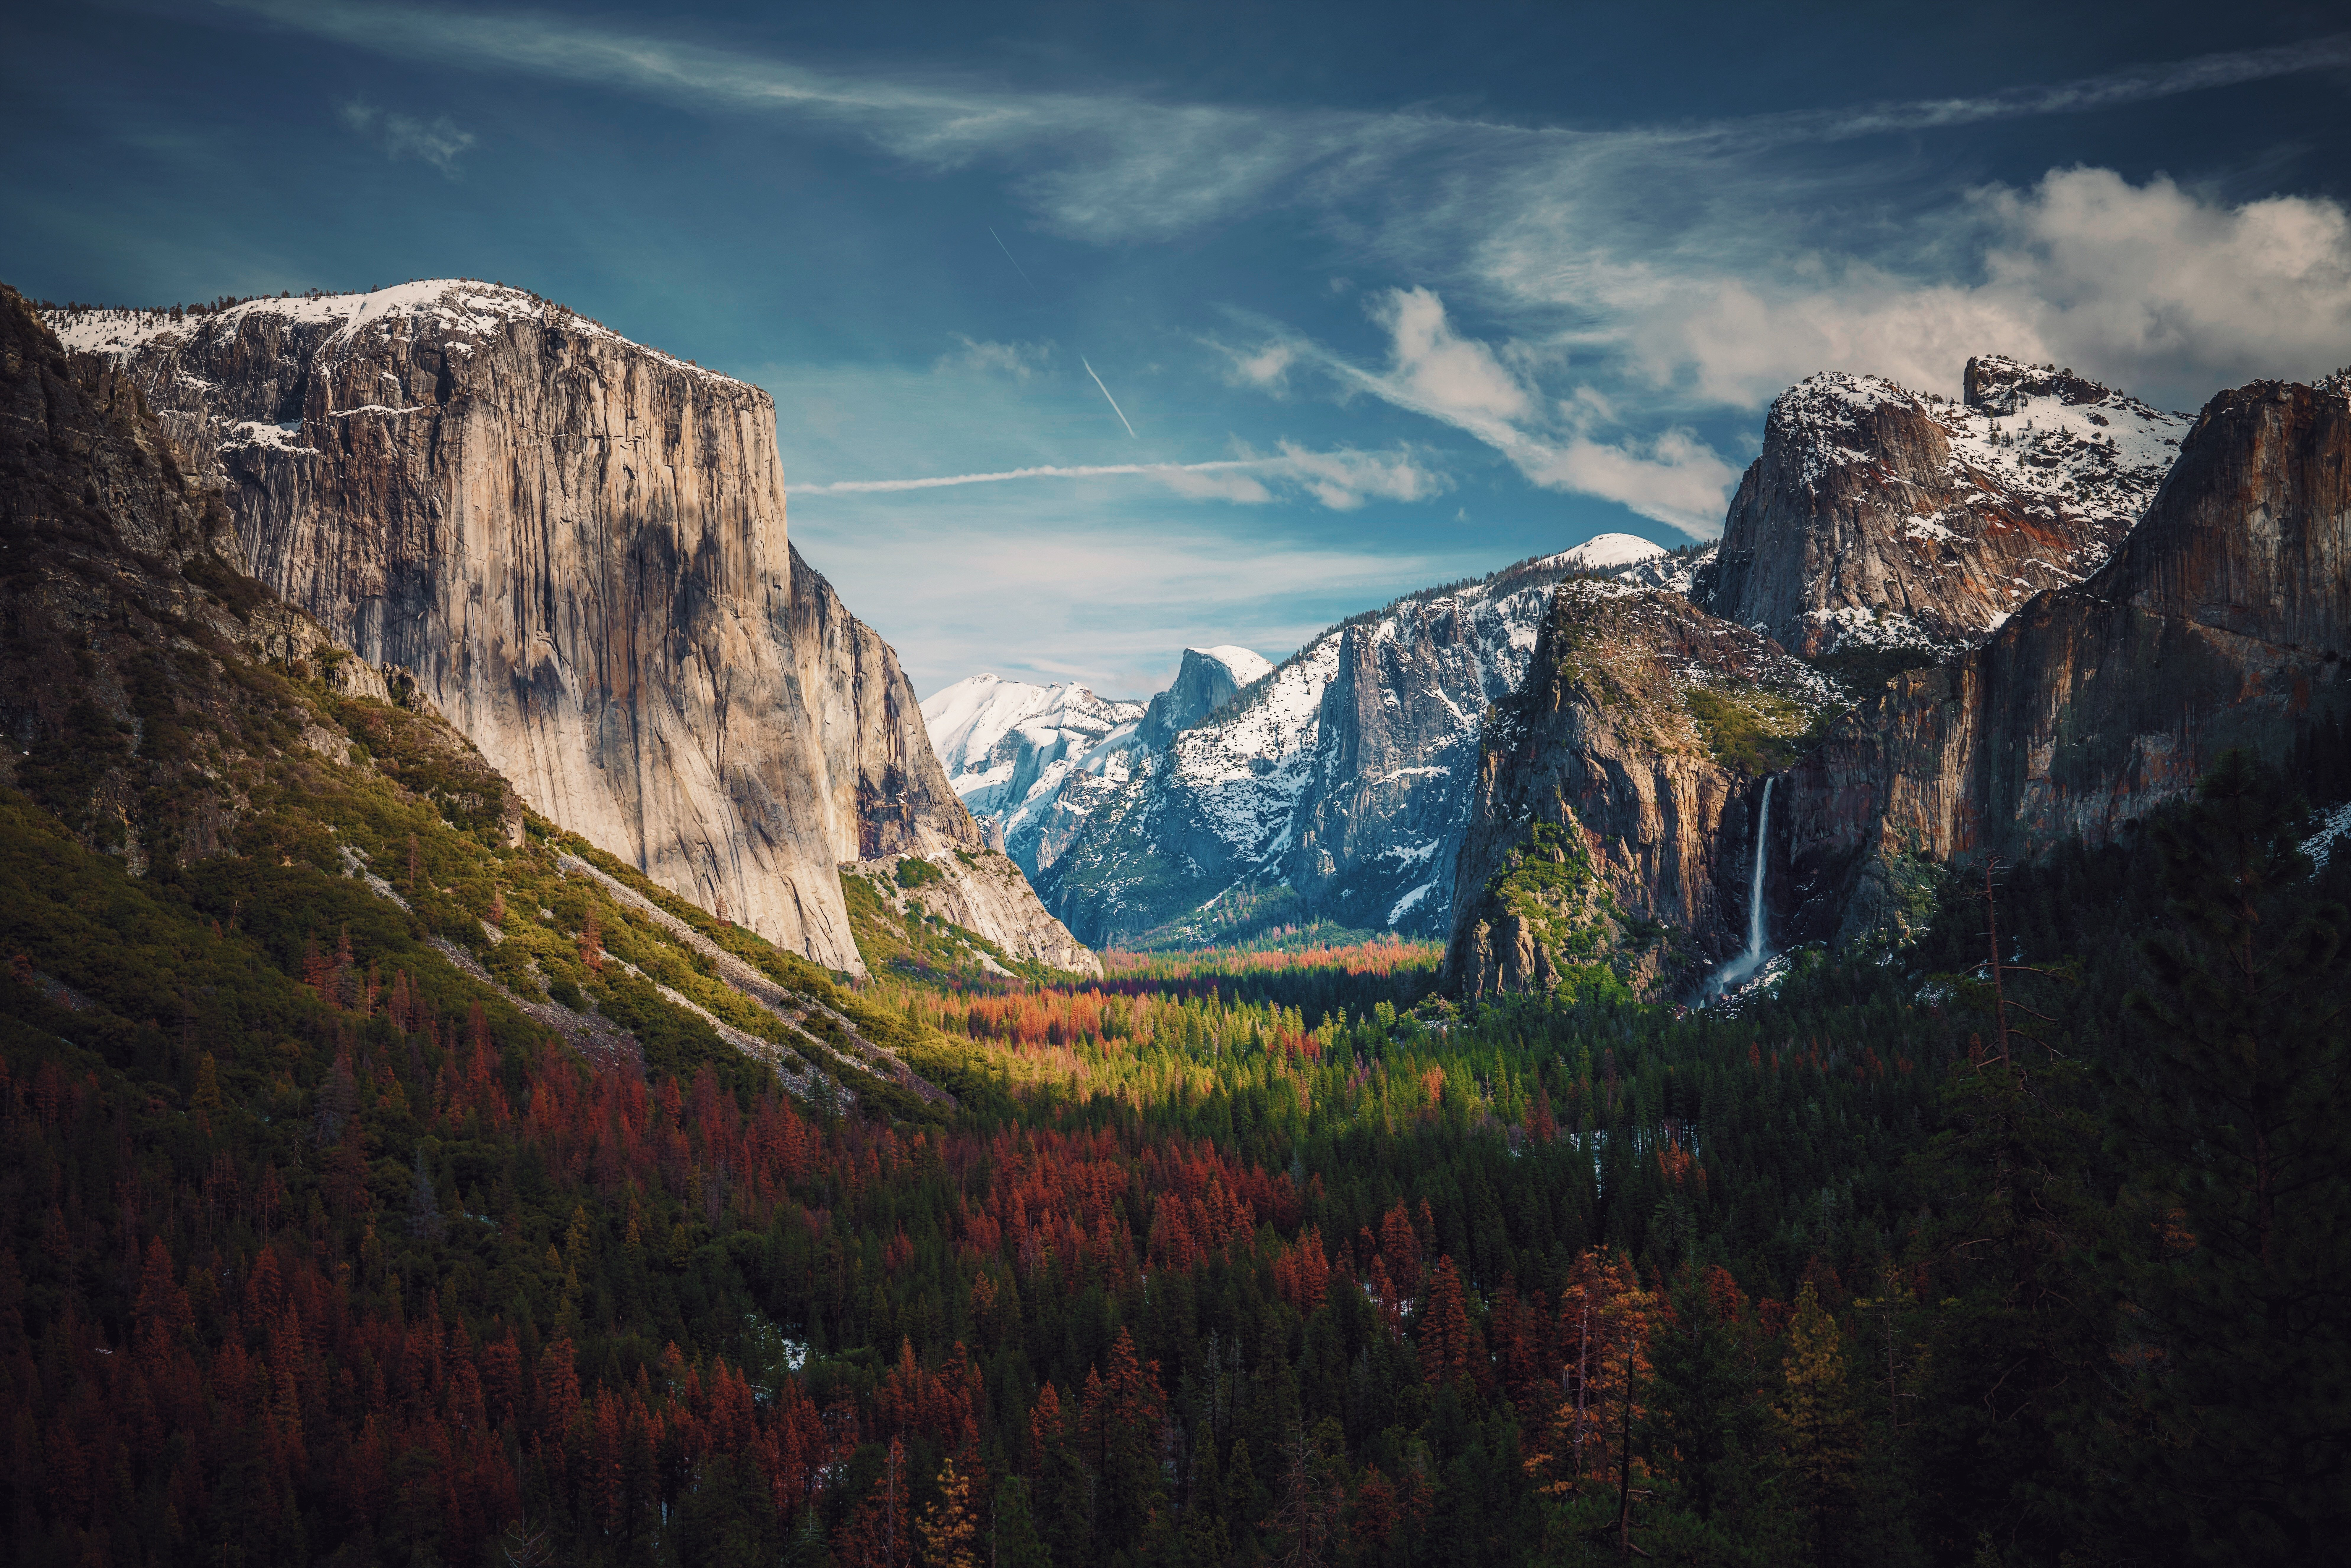 Yosemite 4K wallpapers for your desktop or mobile screen and 7952x5304